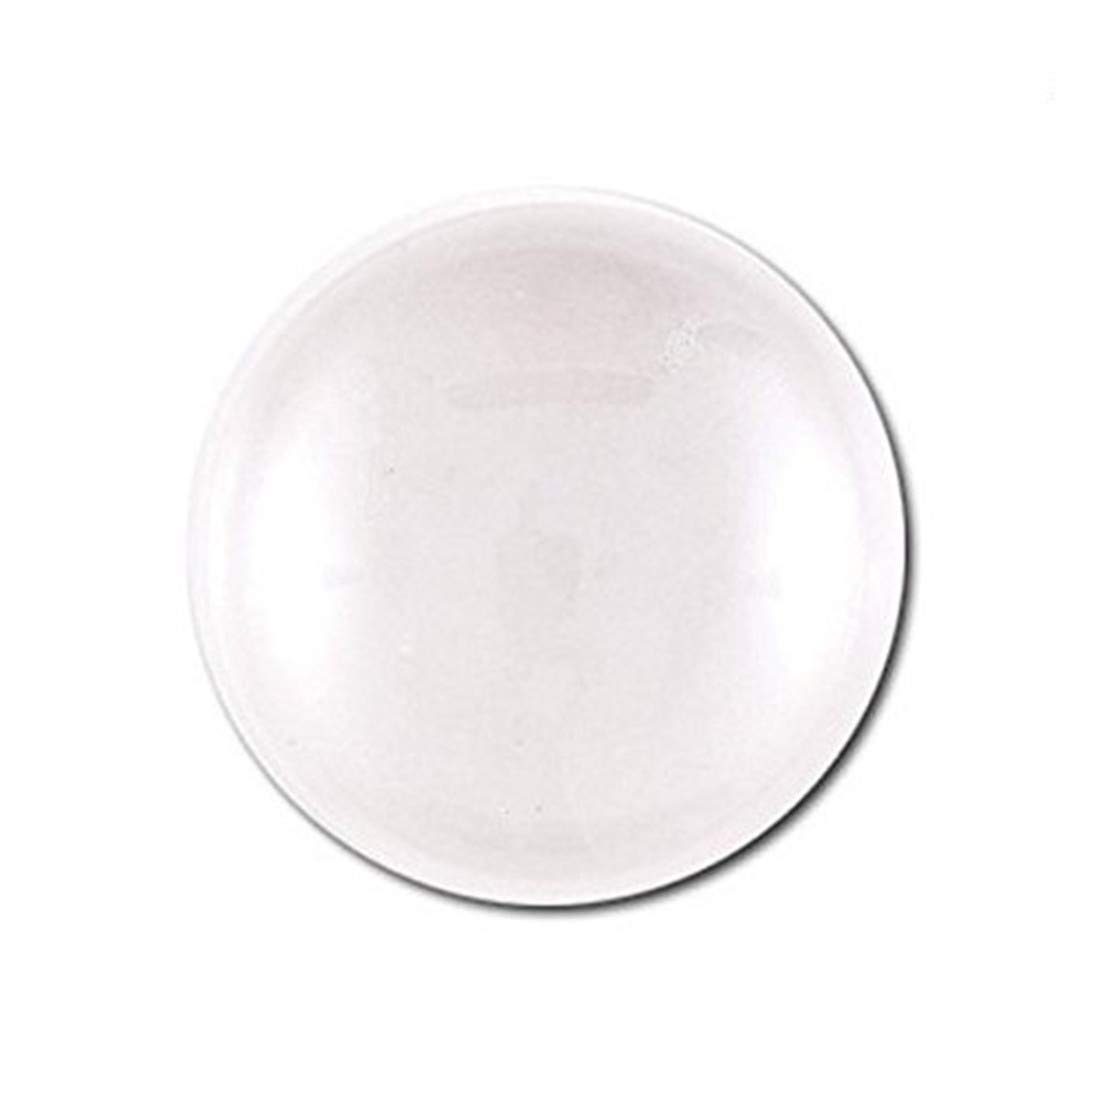 Joyingle Clear Glass Dome Tile Cabochon Clear 30mm 1.2 Inch Non-calibrated Round,30 Pieces 4336824362